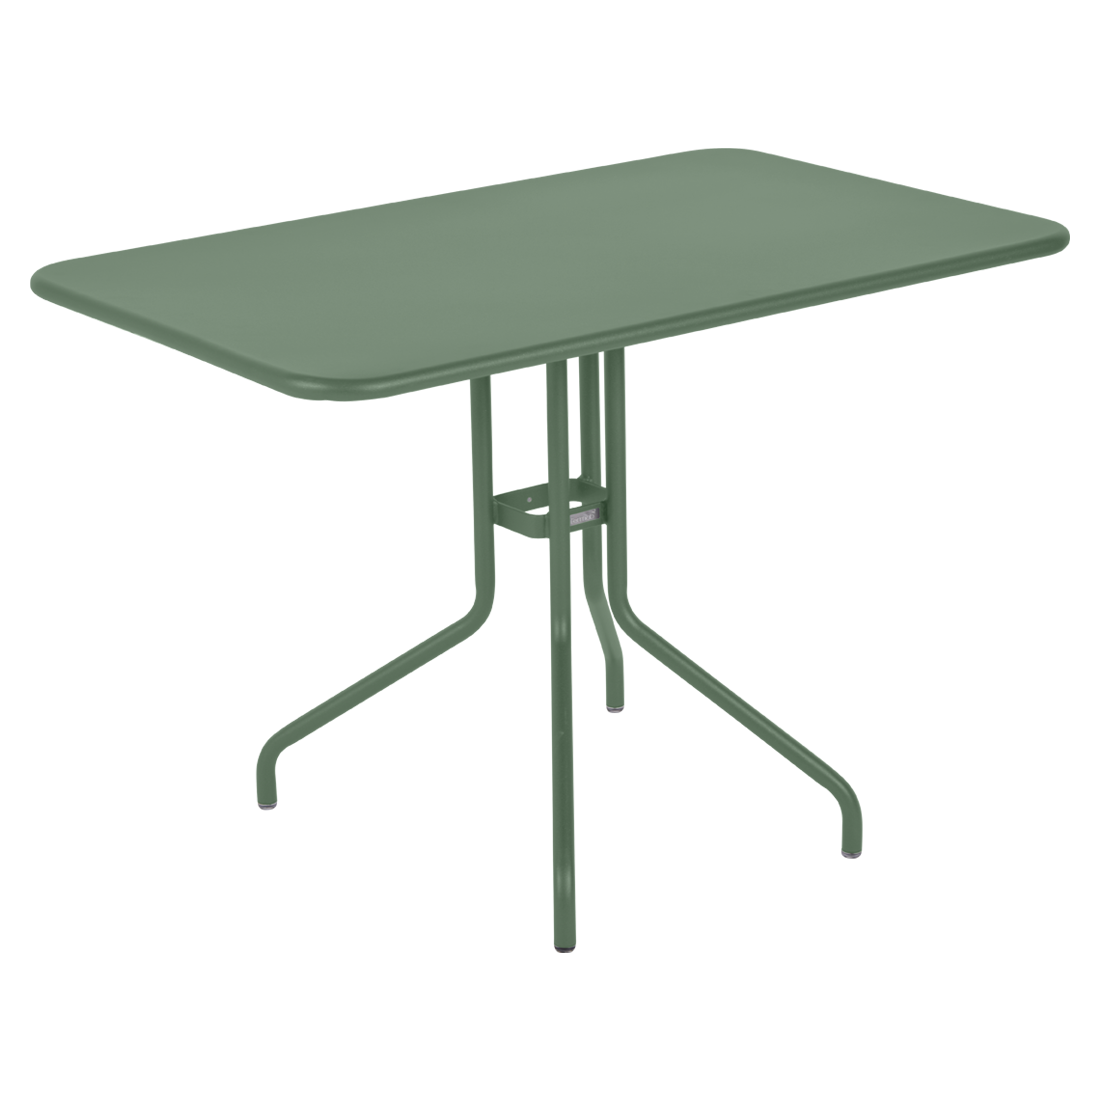 table restaurant, table terrasse, table metal, table pliante metal, mobilier restaurant, table pliante verte